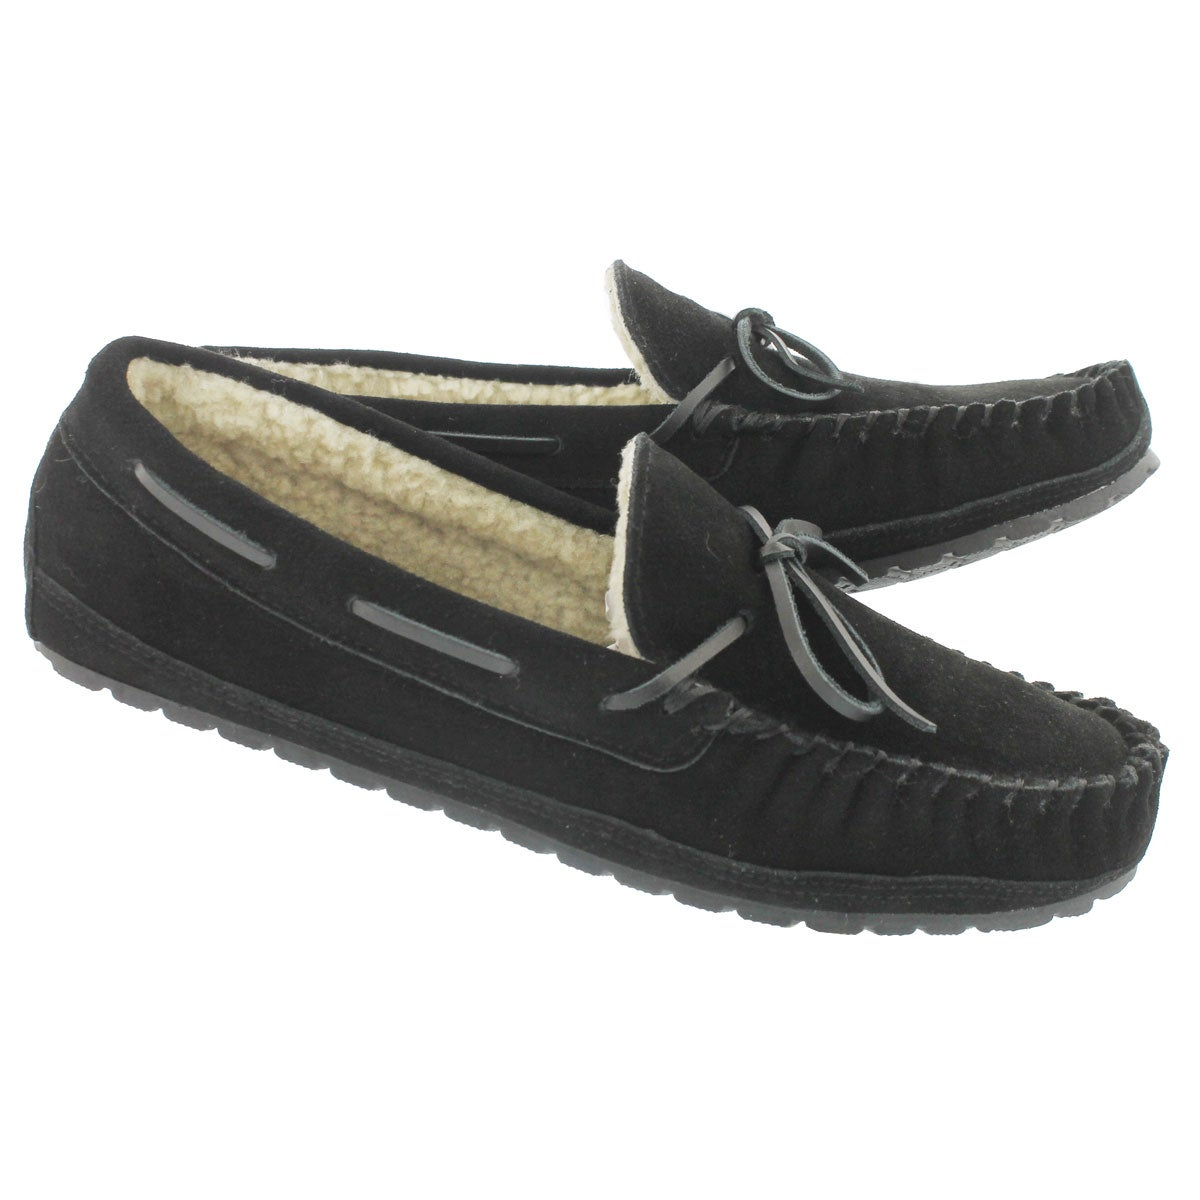 Mns Preston black memory foam moccasin